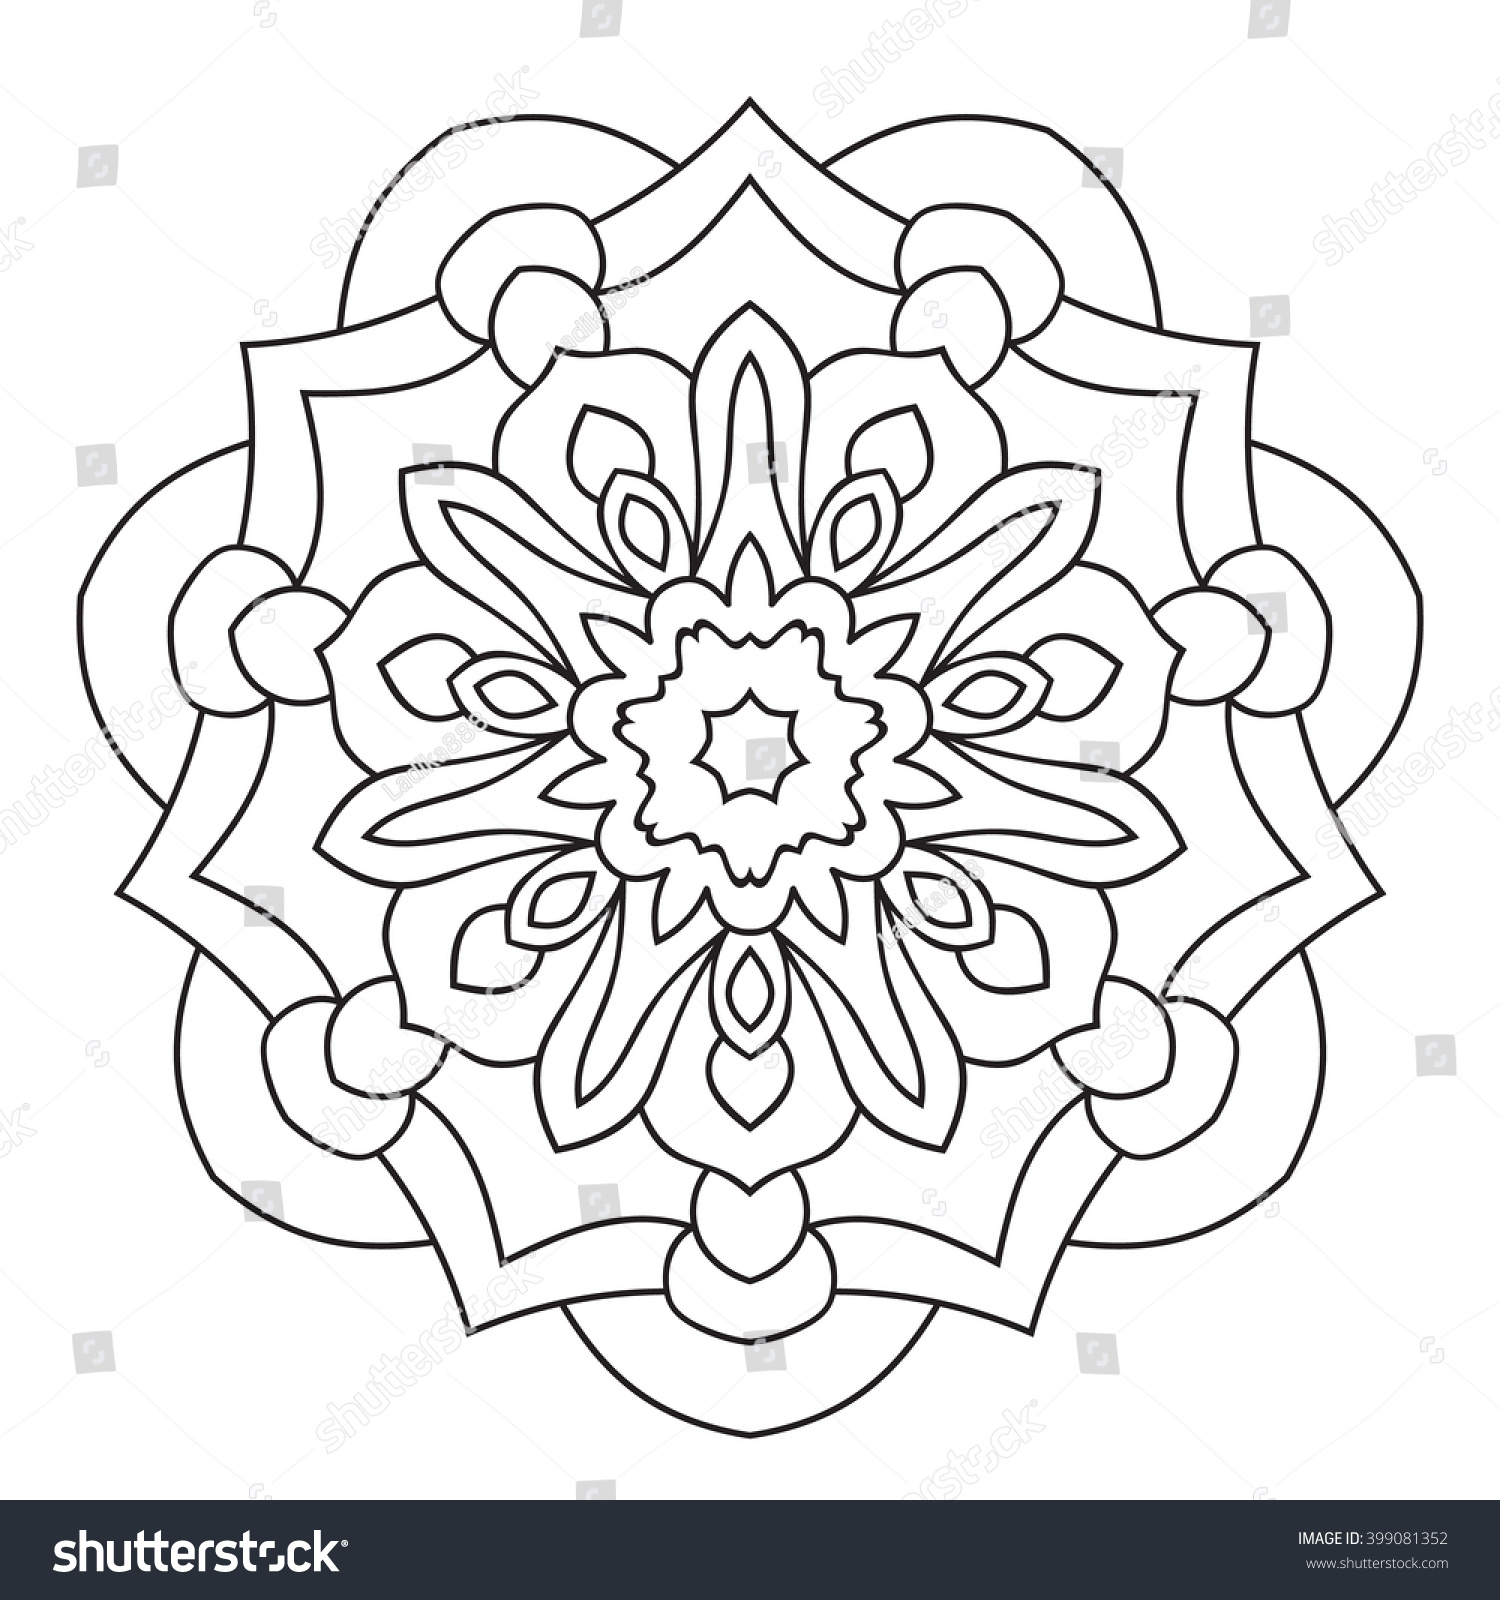 symmetrical circular pattern mandala decorative oriental pattern coloring page for adults